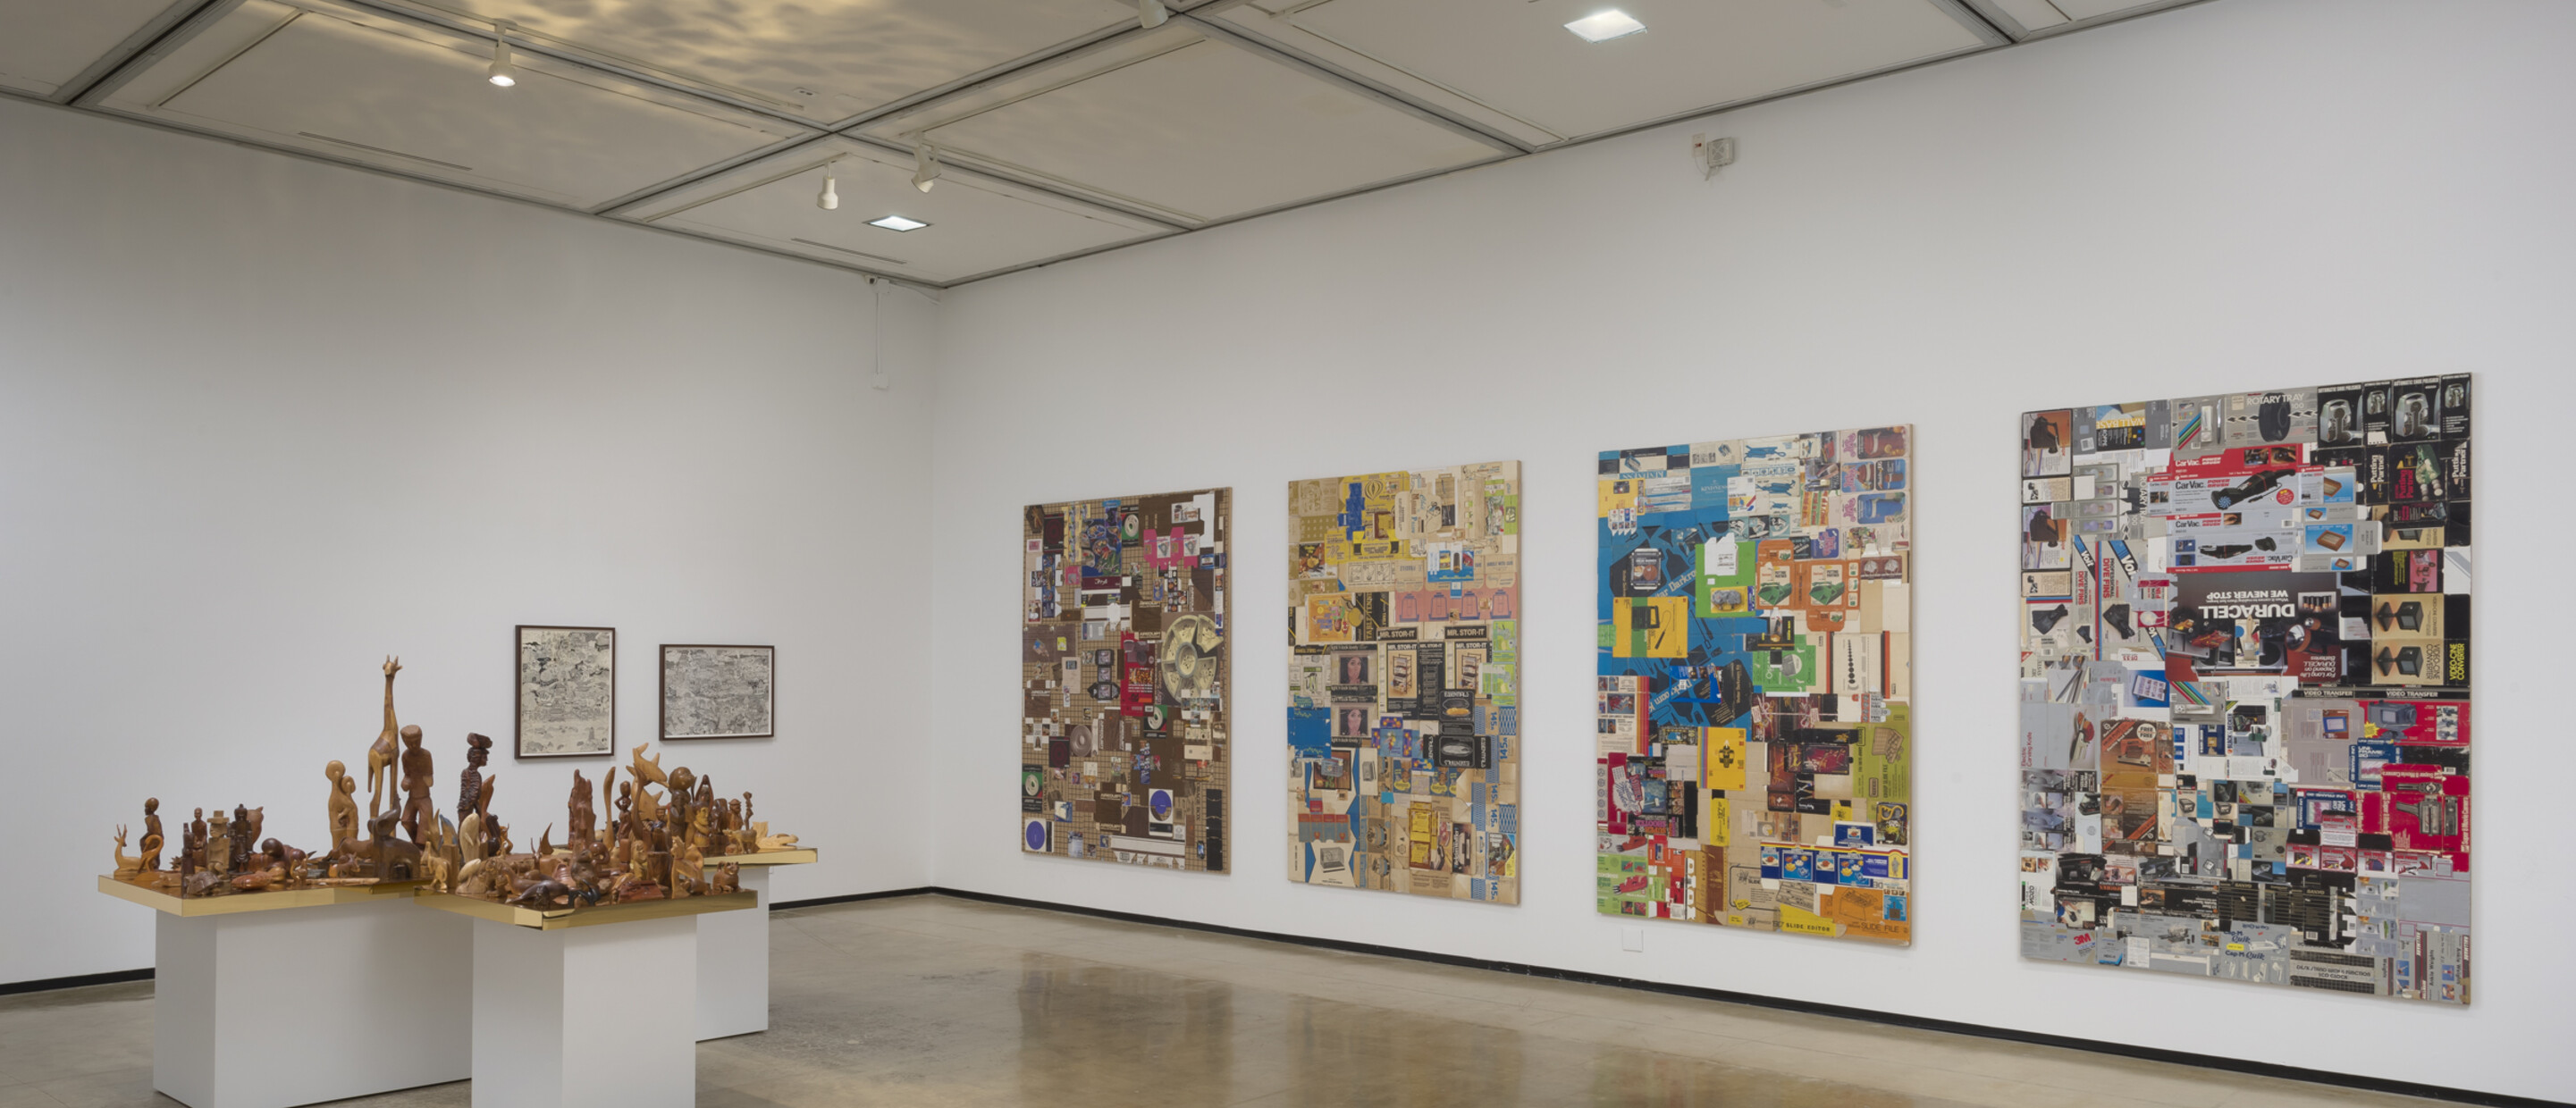 Installation view of R.S.V.P. Los Angeles with 4 multi-media works on the wall and table with multiple wooden sculptures